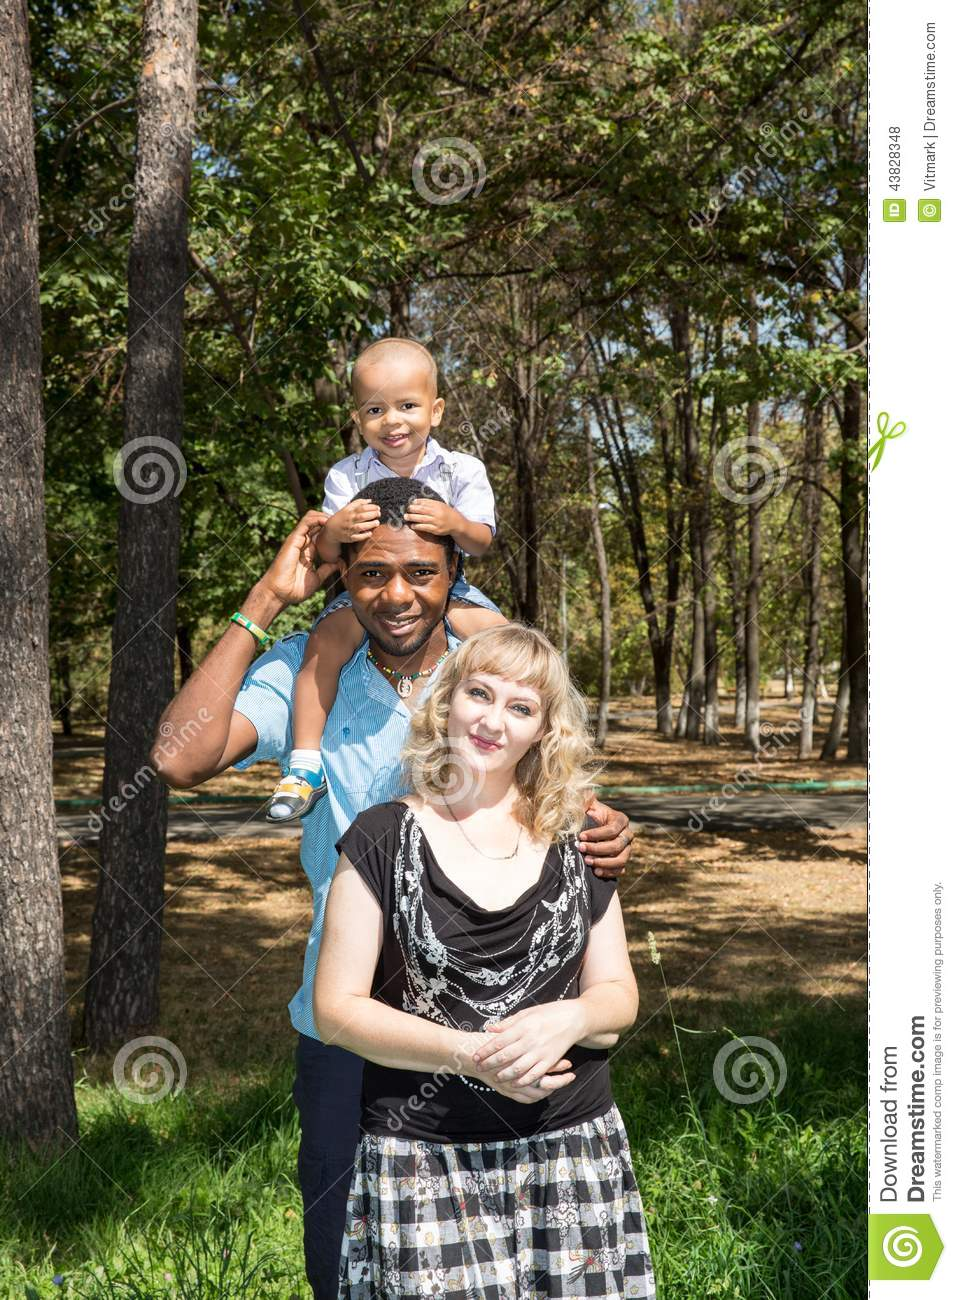 parents and childrens relationship with nature